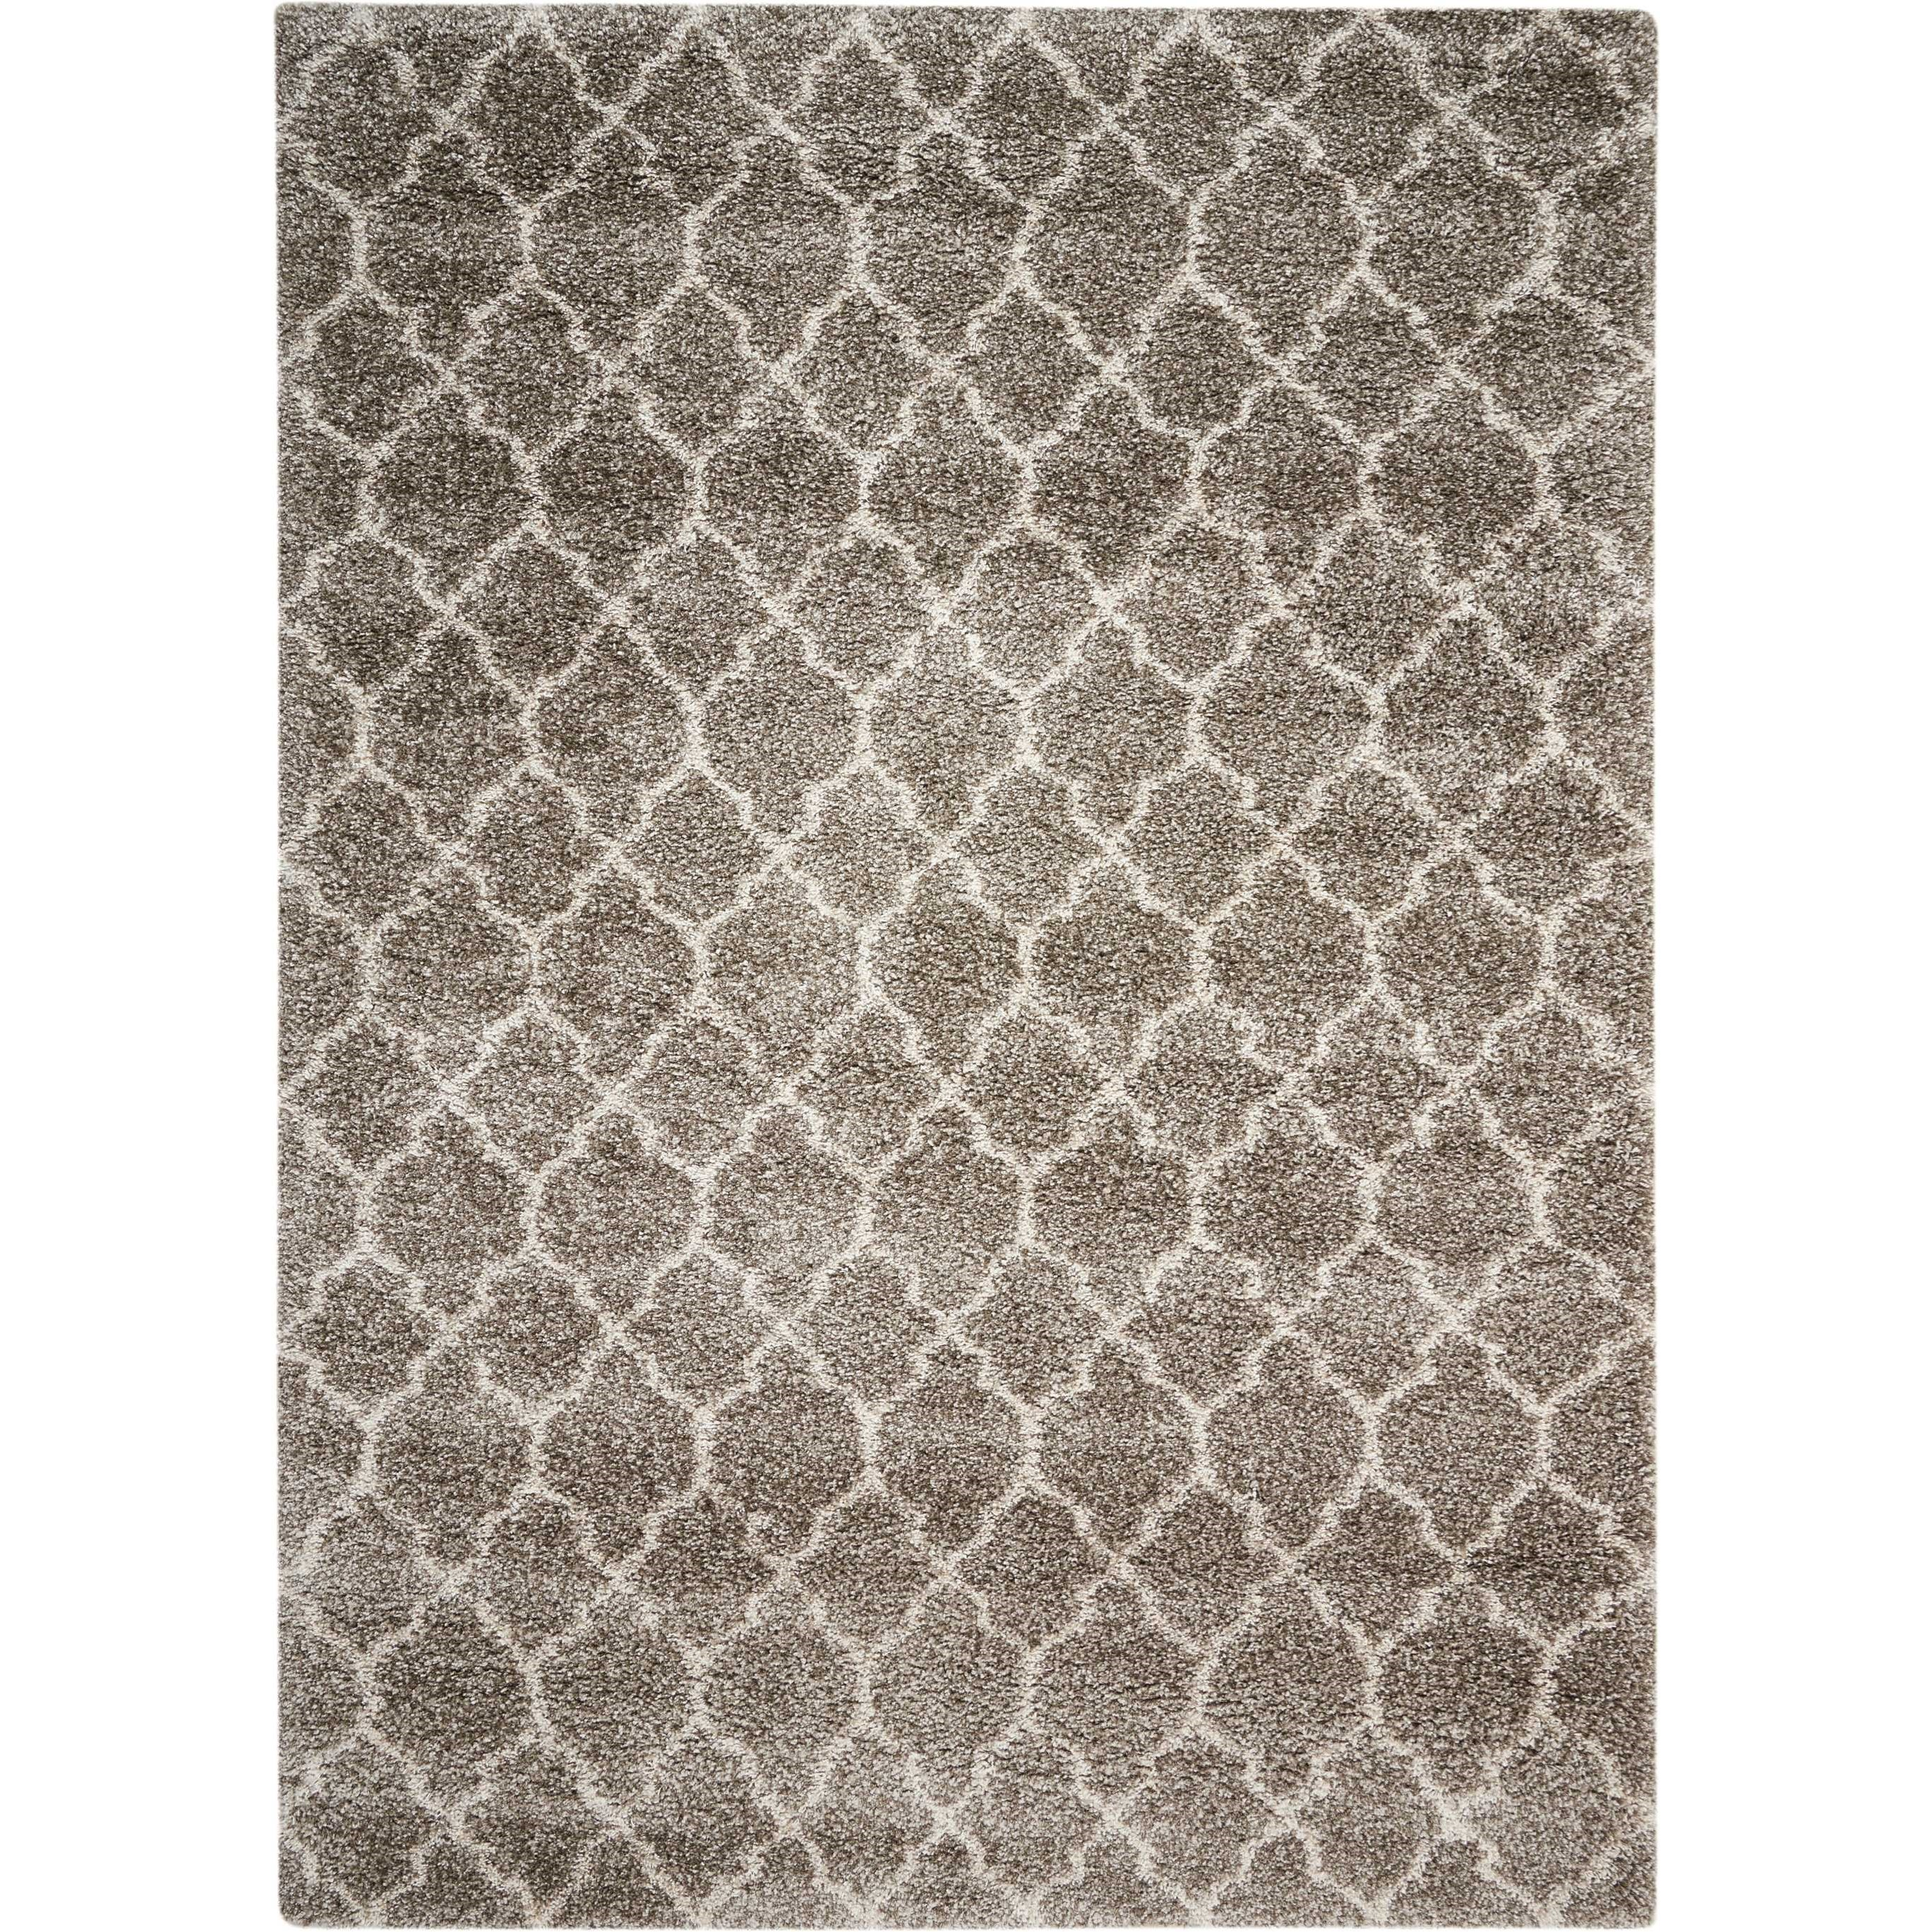 "Amore 6'7"" x 9'6"" Stone Rectangle Rug by Nourison at Sprintz Furniture"